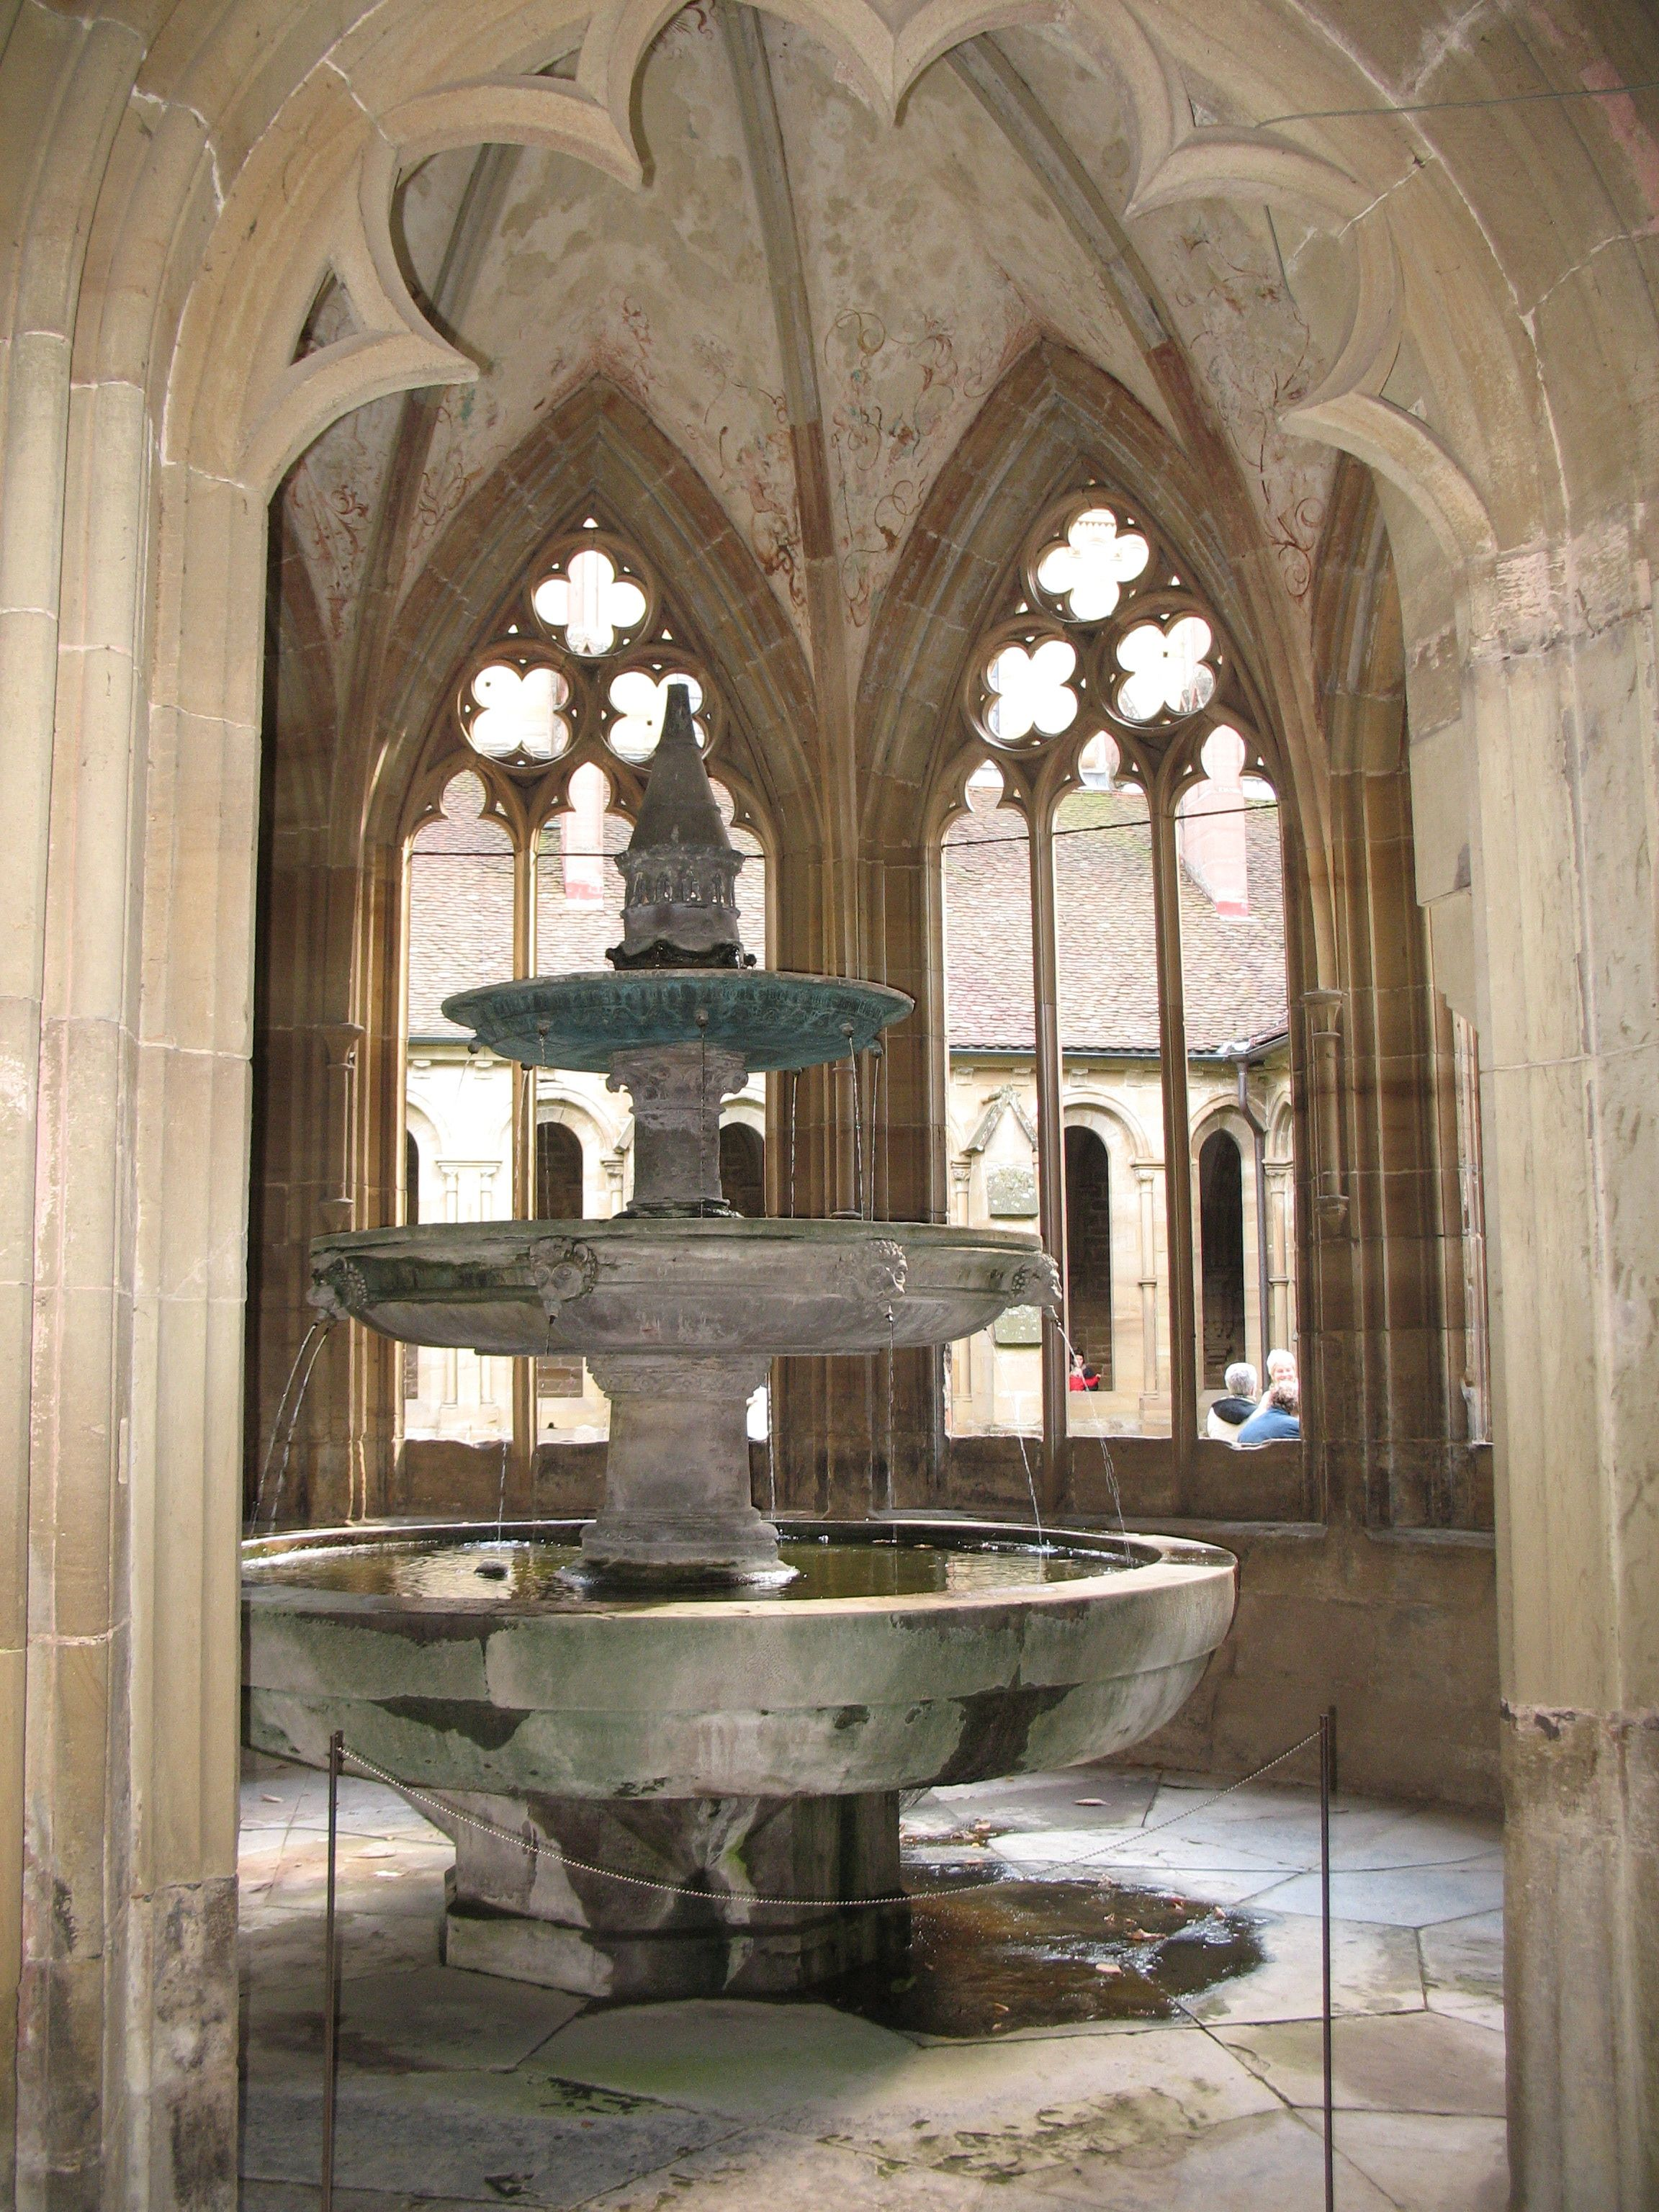 Kloster Maulbronn Maulbronn Monastery Baden Wurttemberg Water Architecture Place Of Worship Architecture